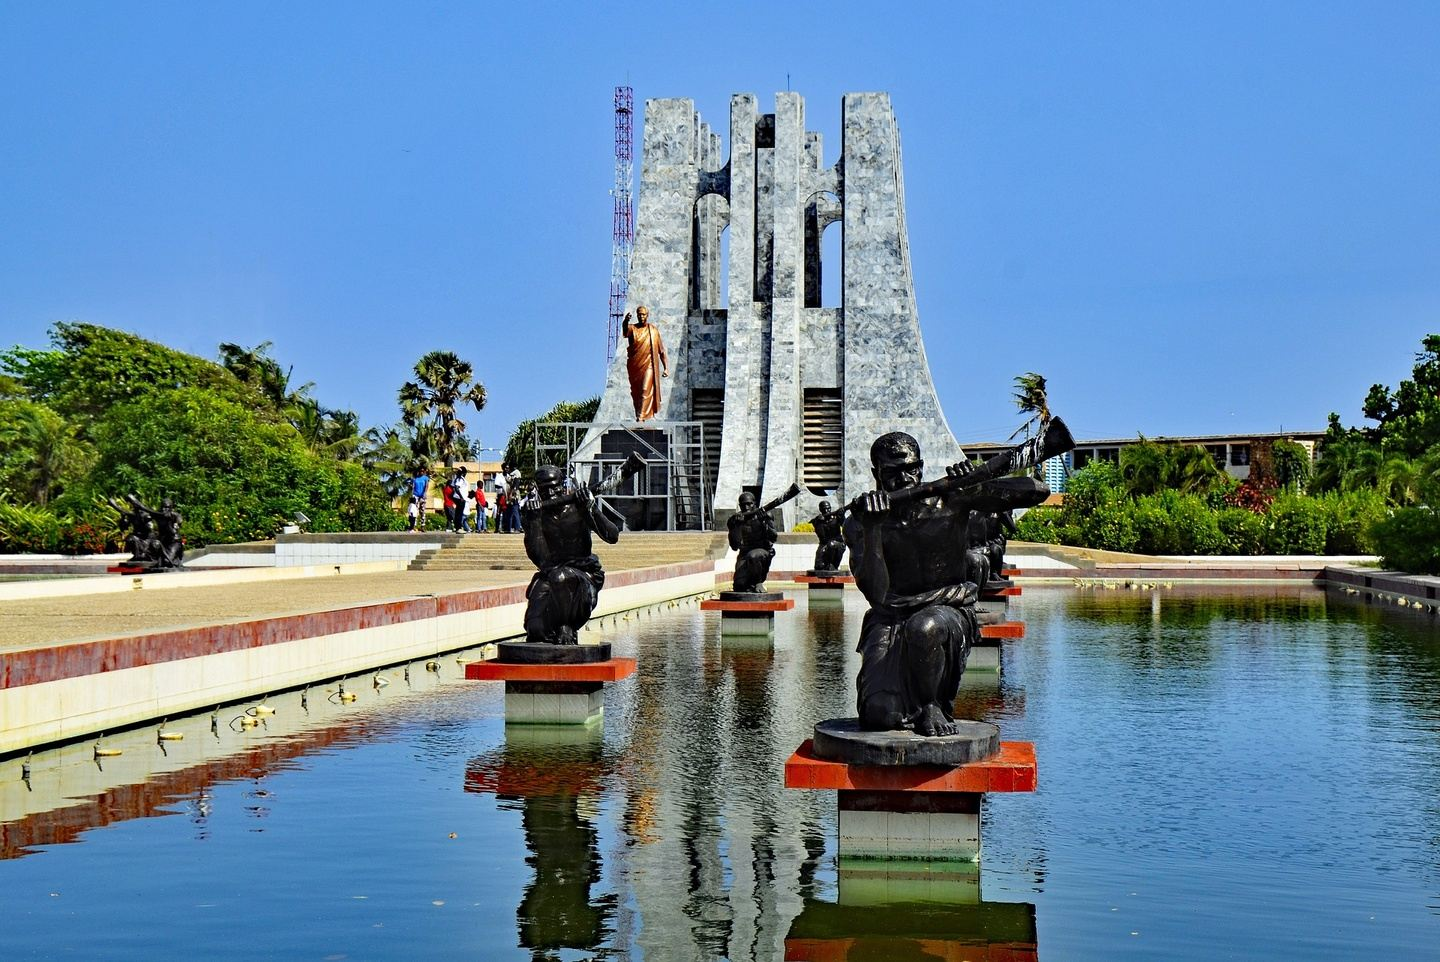 Epic historical & cultural trip to Ghana